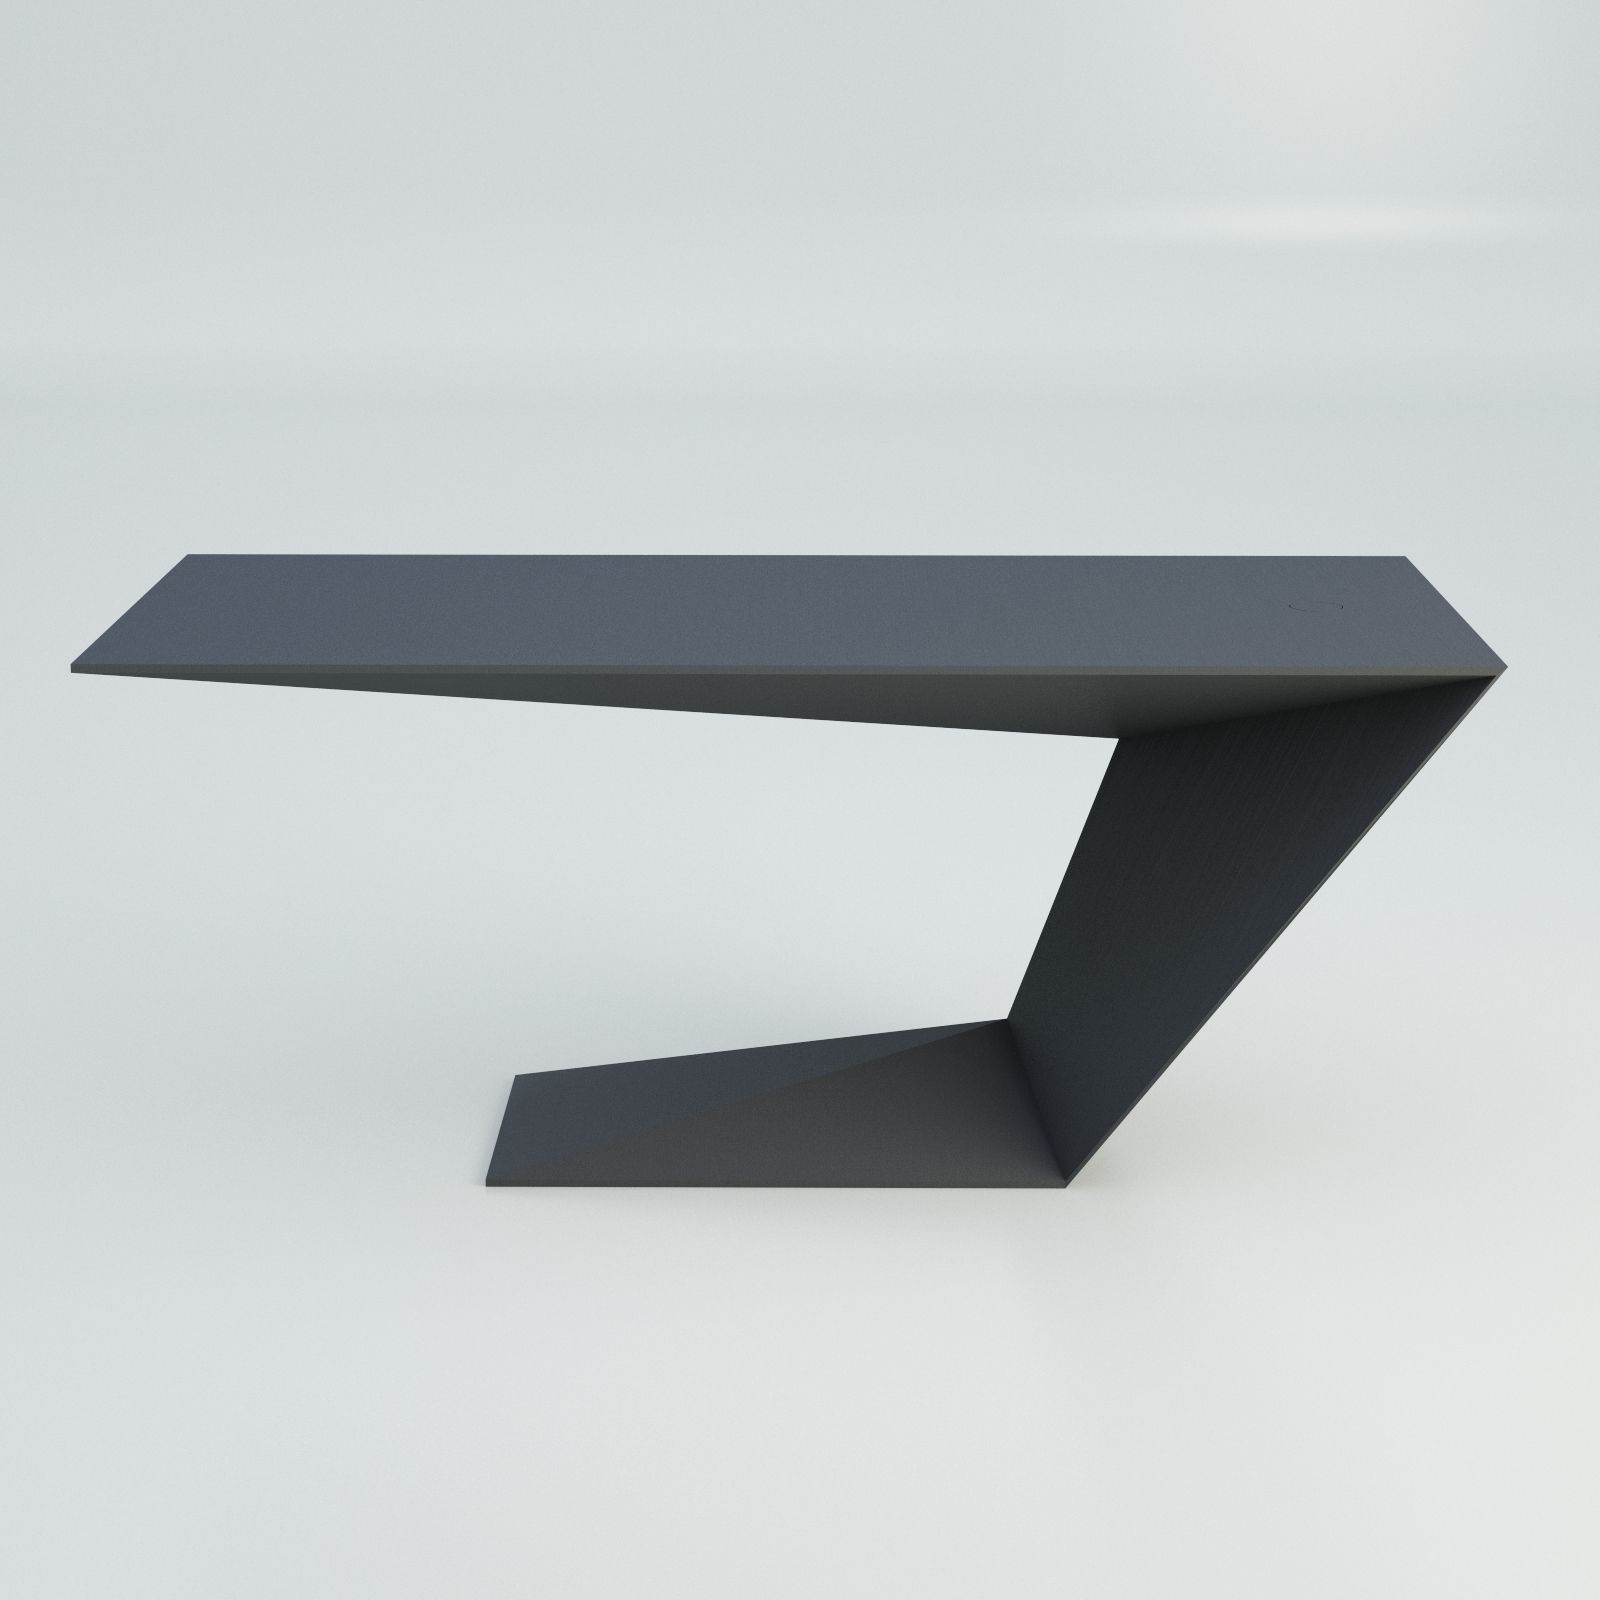 furtif desk modern table roche bobois model cgtrader